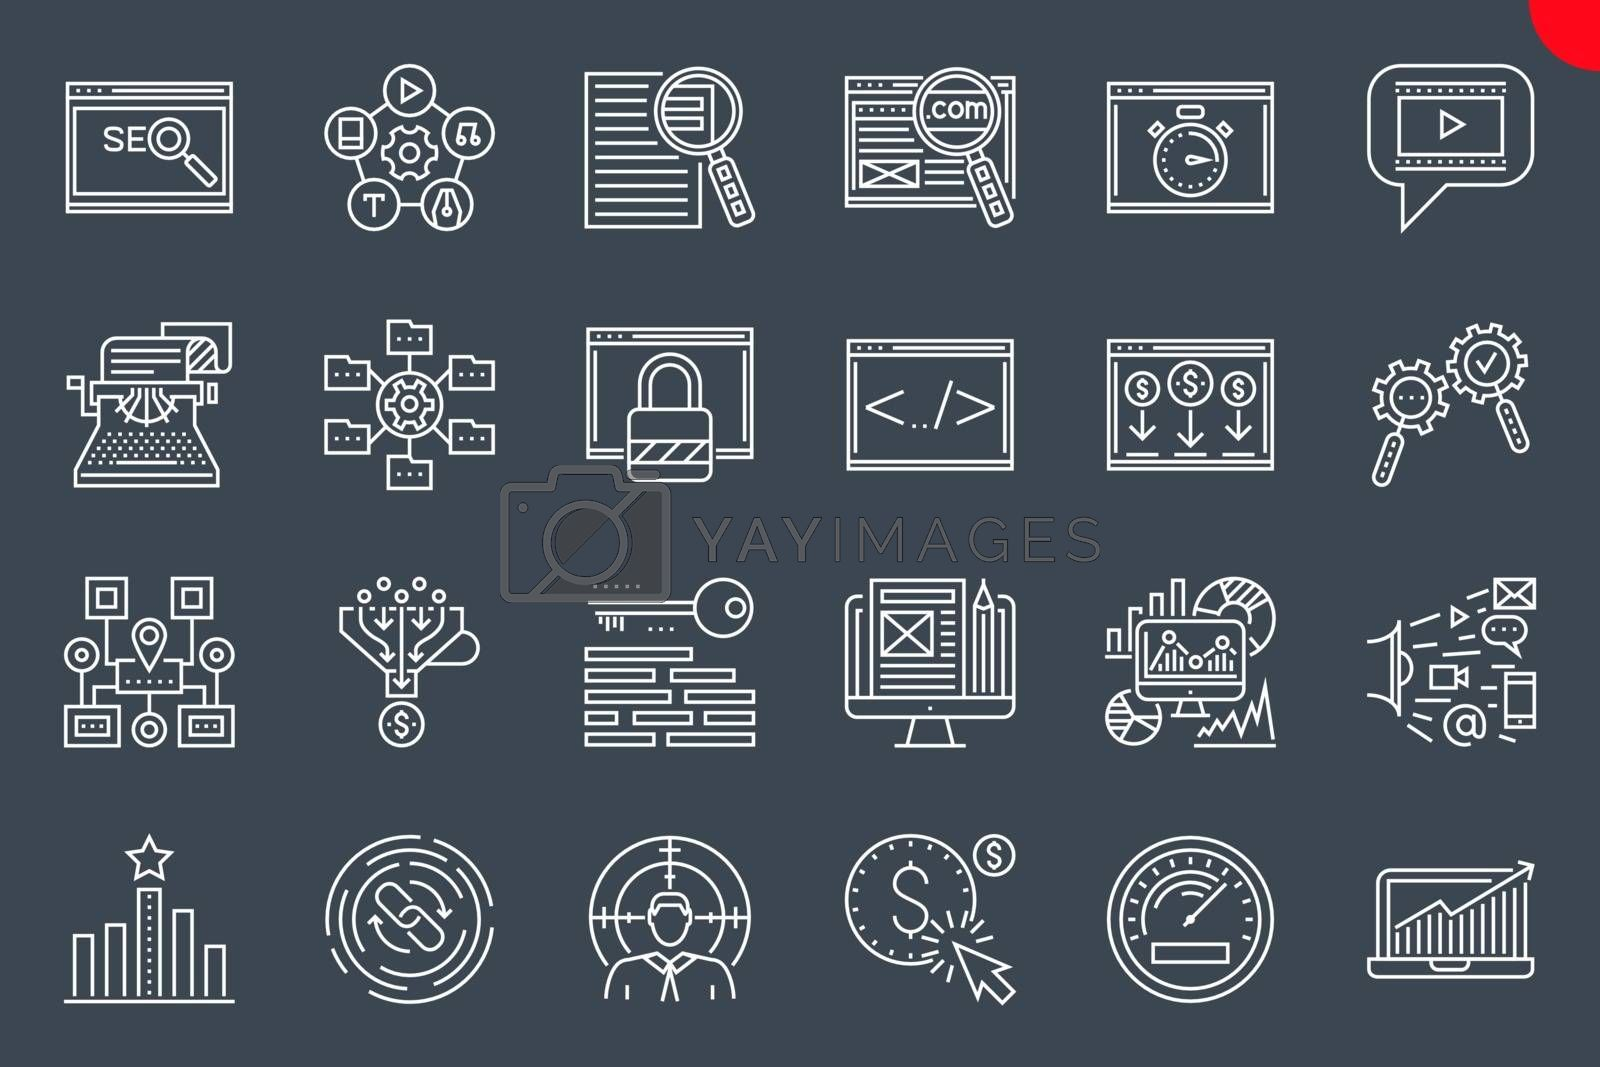 Seo Thin Line Related Icons Set on Black Background. Simple Linear Pictogram Pack Stroke Vector Logo Concept for Web Graphics. Editable Stroke.